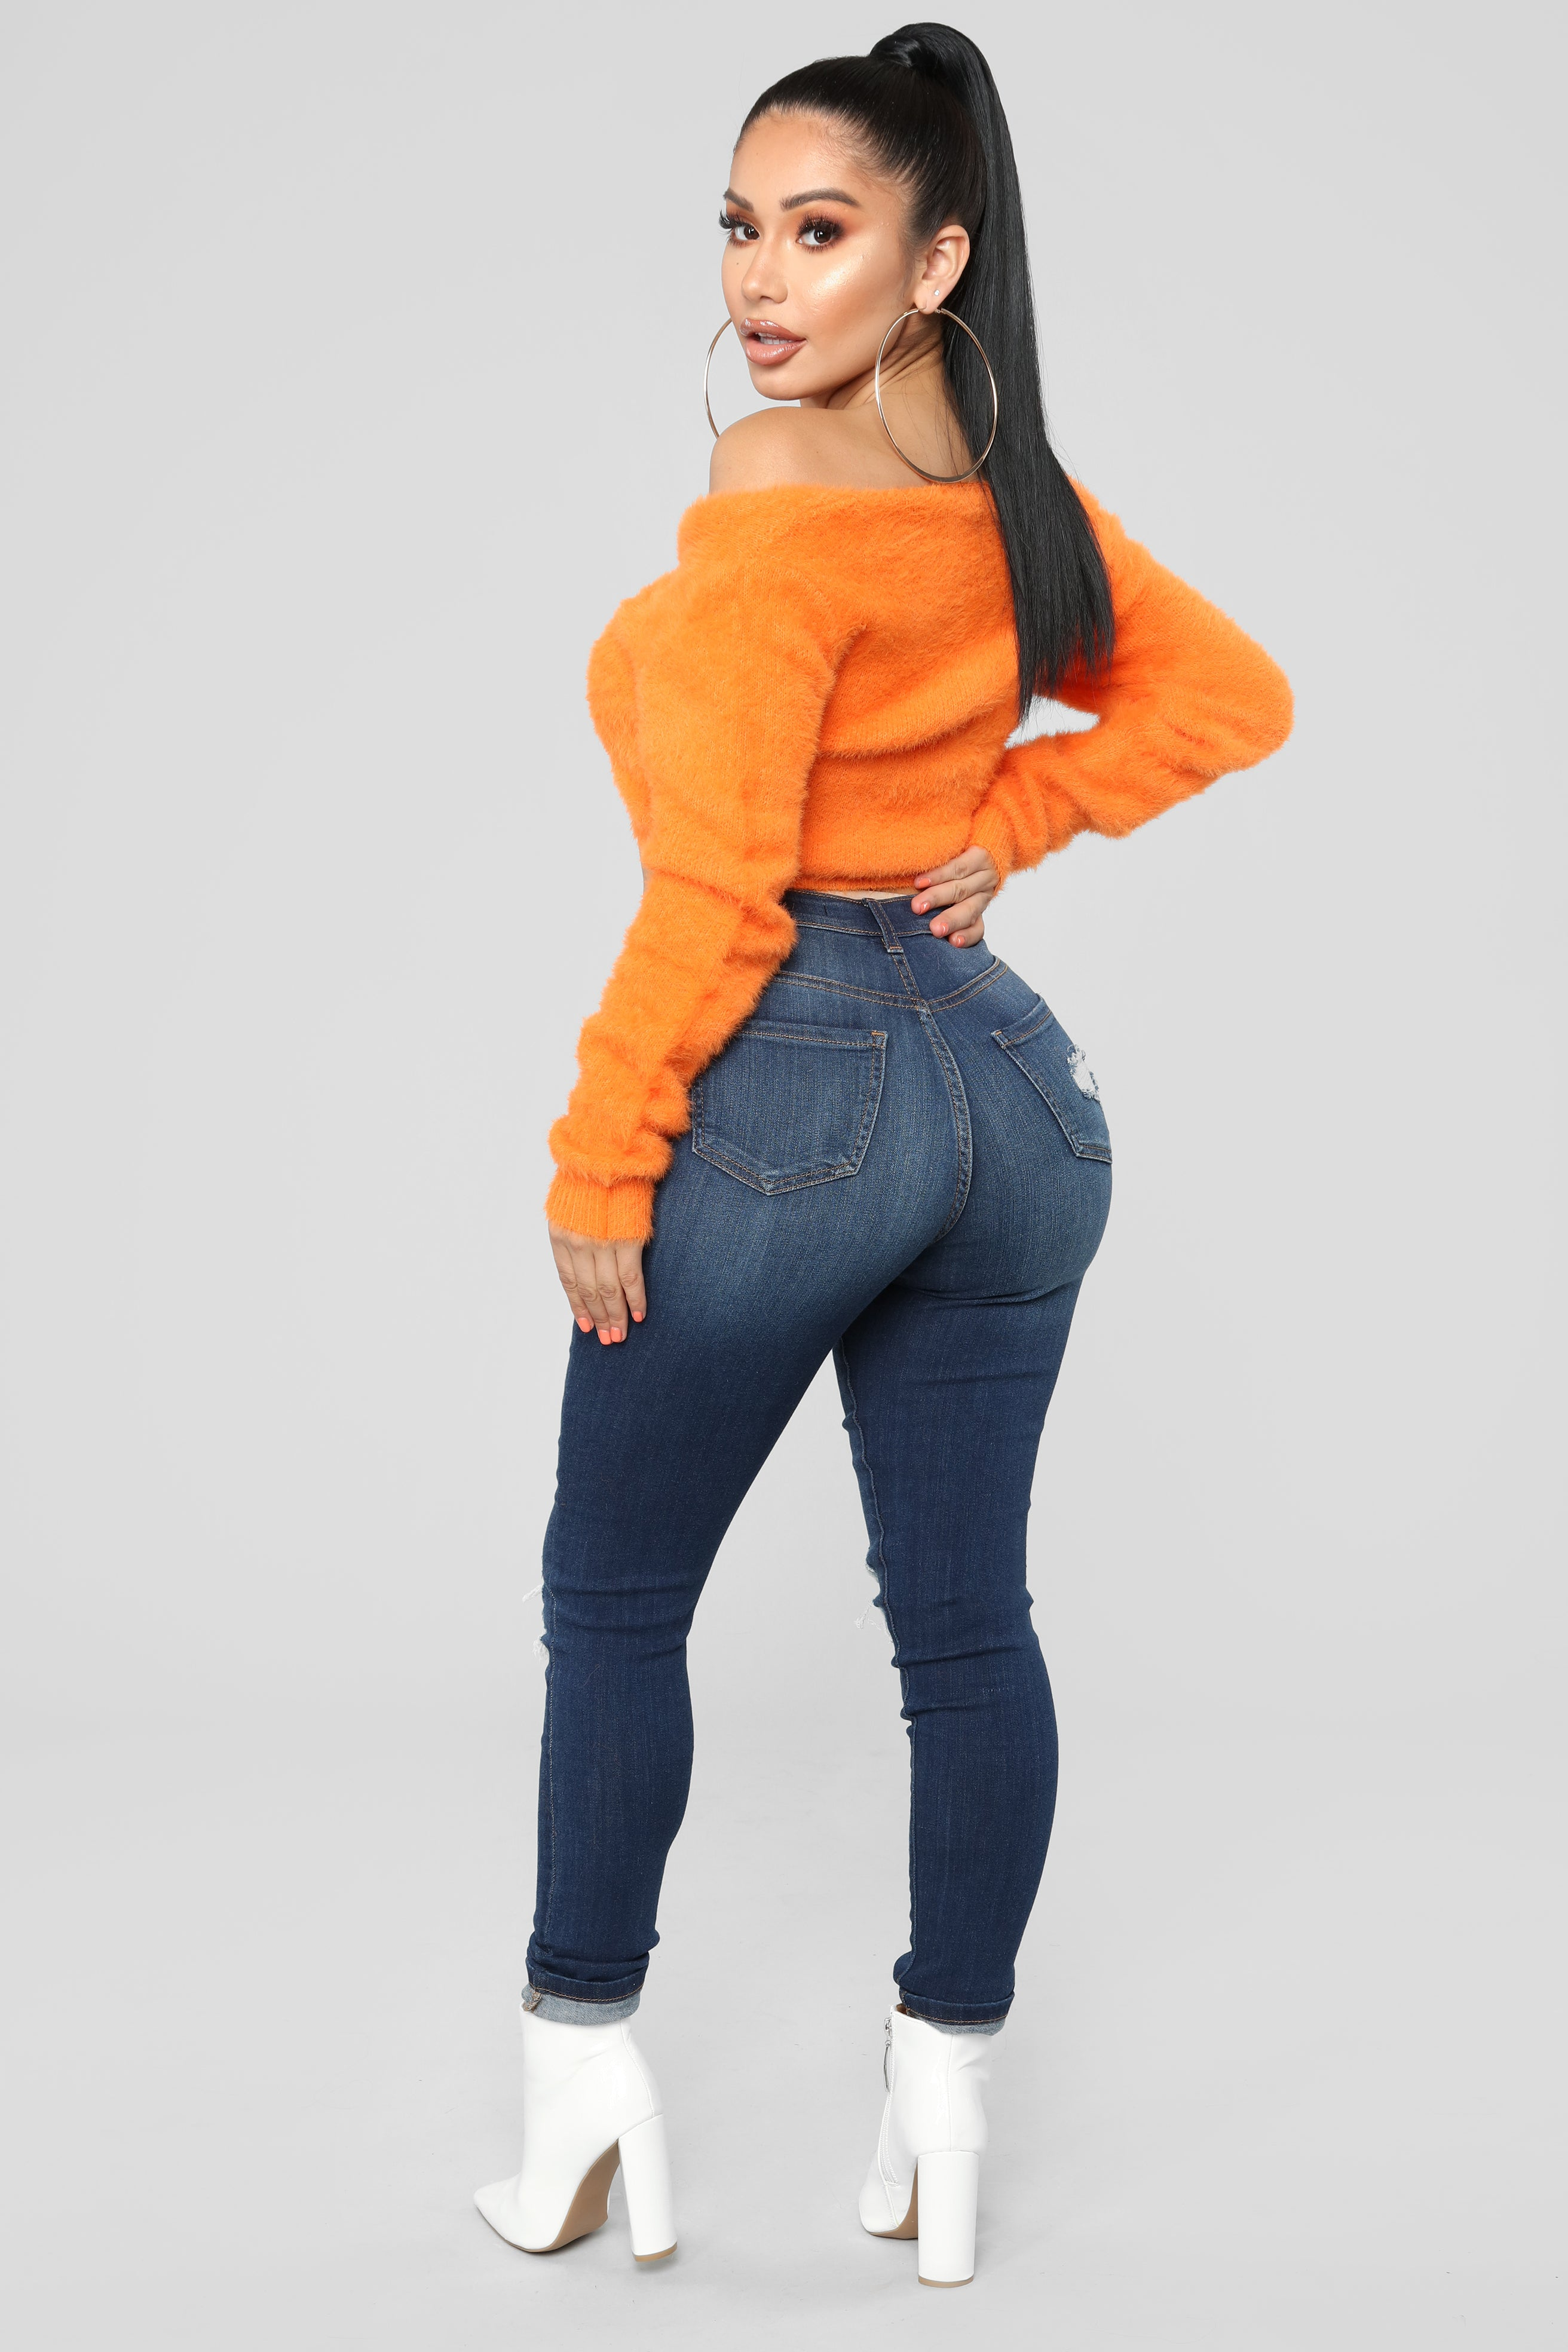 ce2320dfbac6f6 Bend And Snap Fuzzy Cropped Sweater - Orange